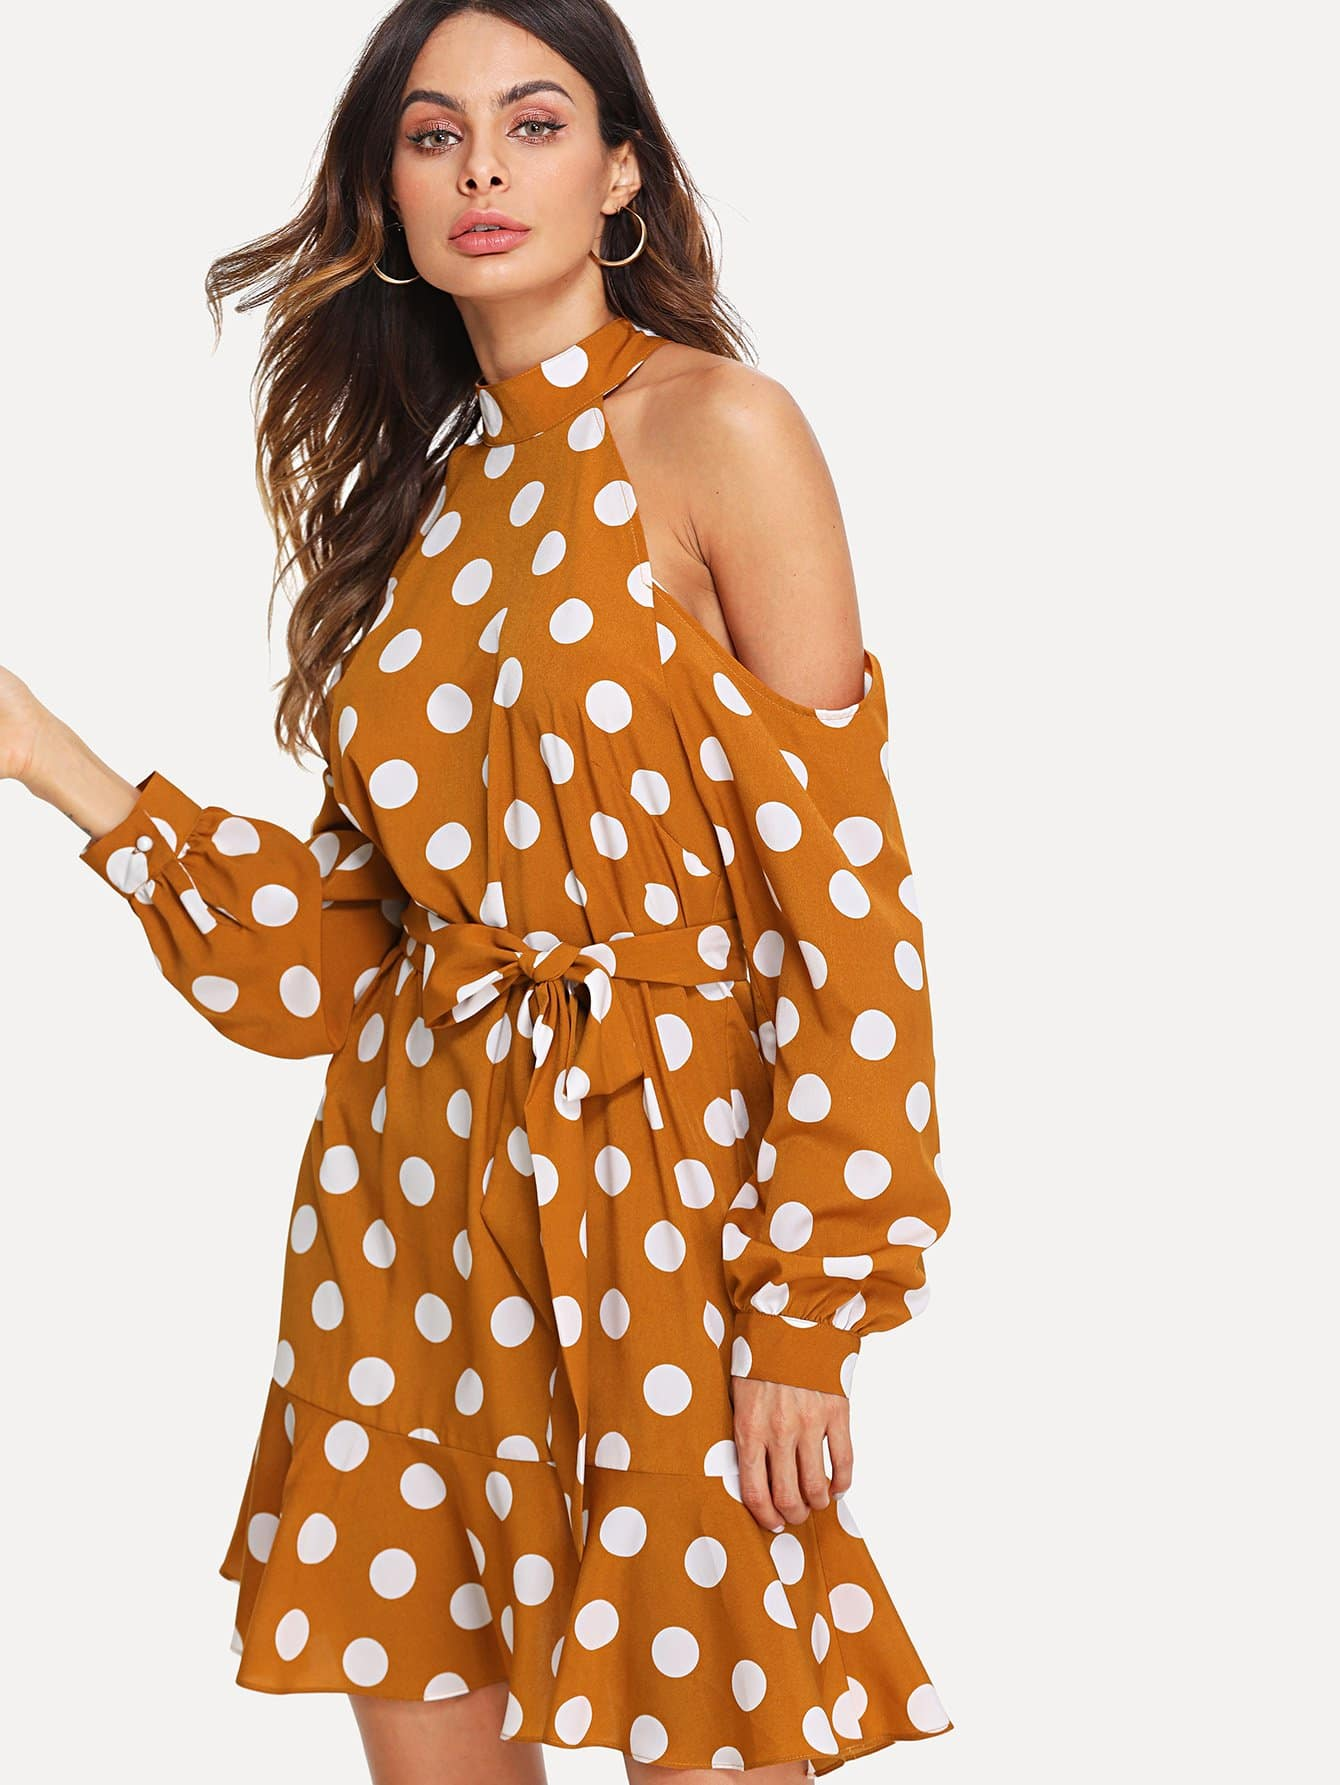 Self Belted Polka Dot Halter Cold Shoulder Dress flounce one shoulder polka dot dress